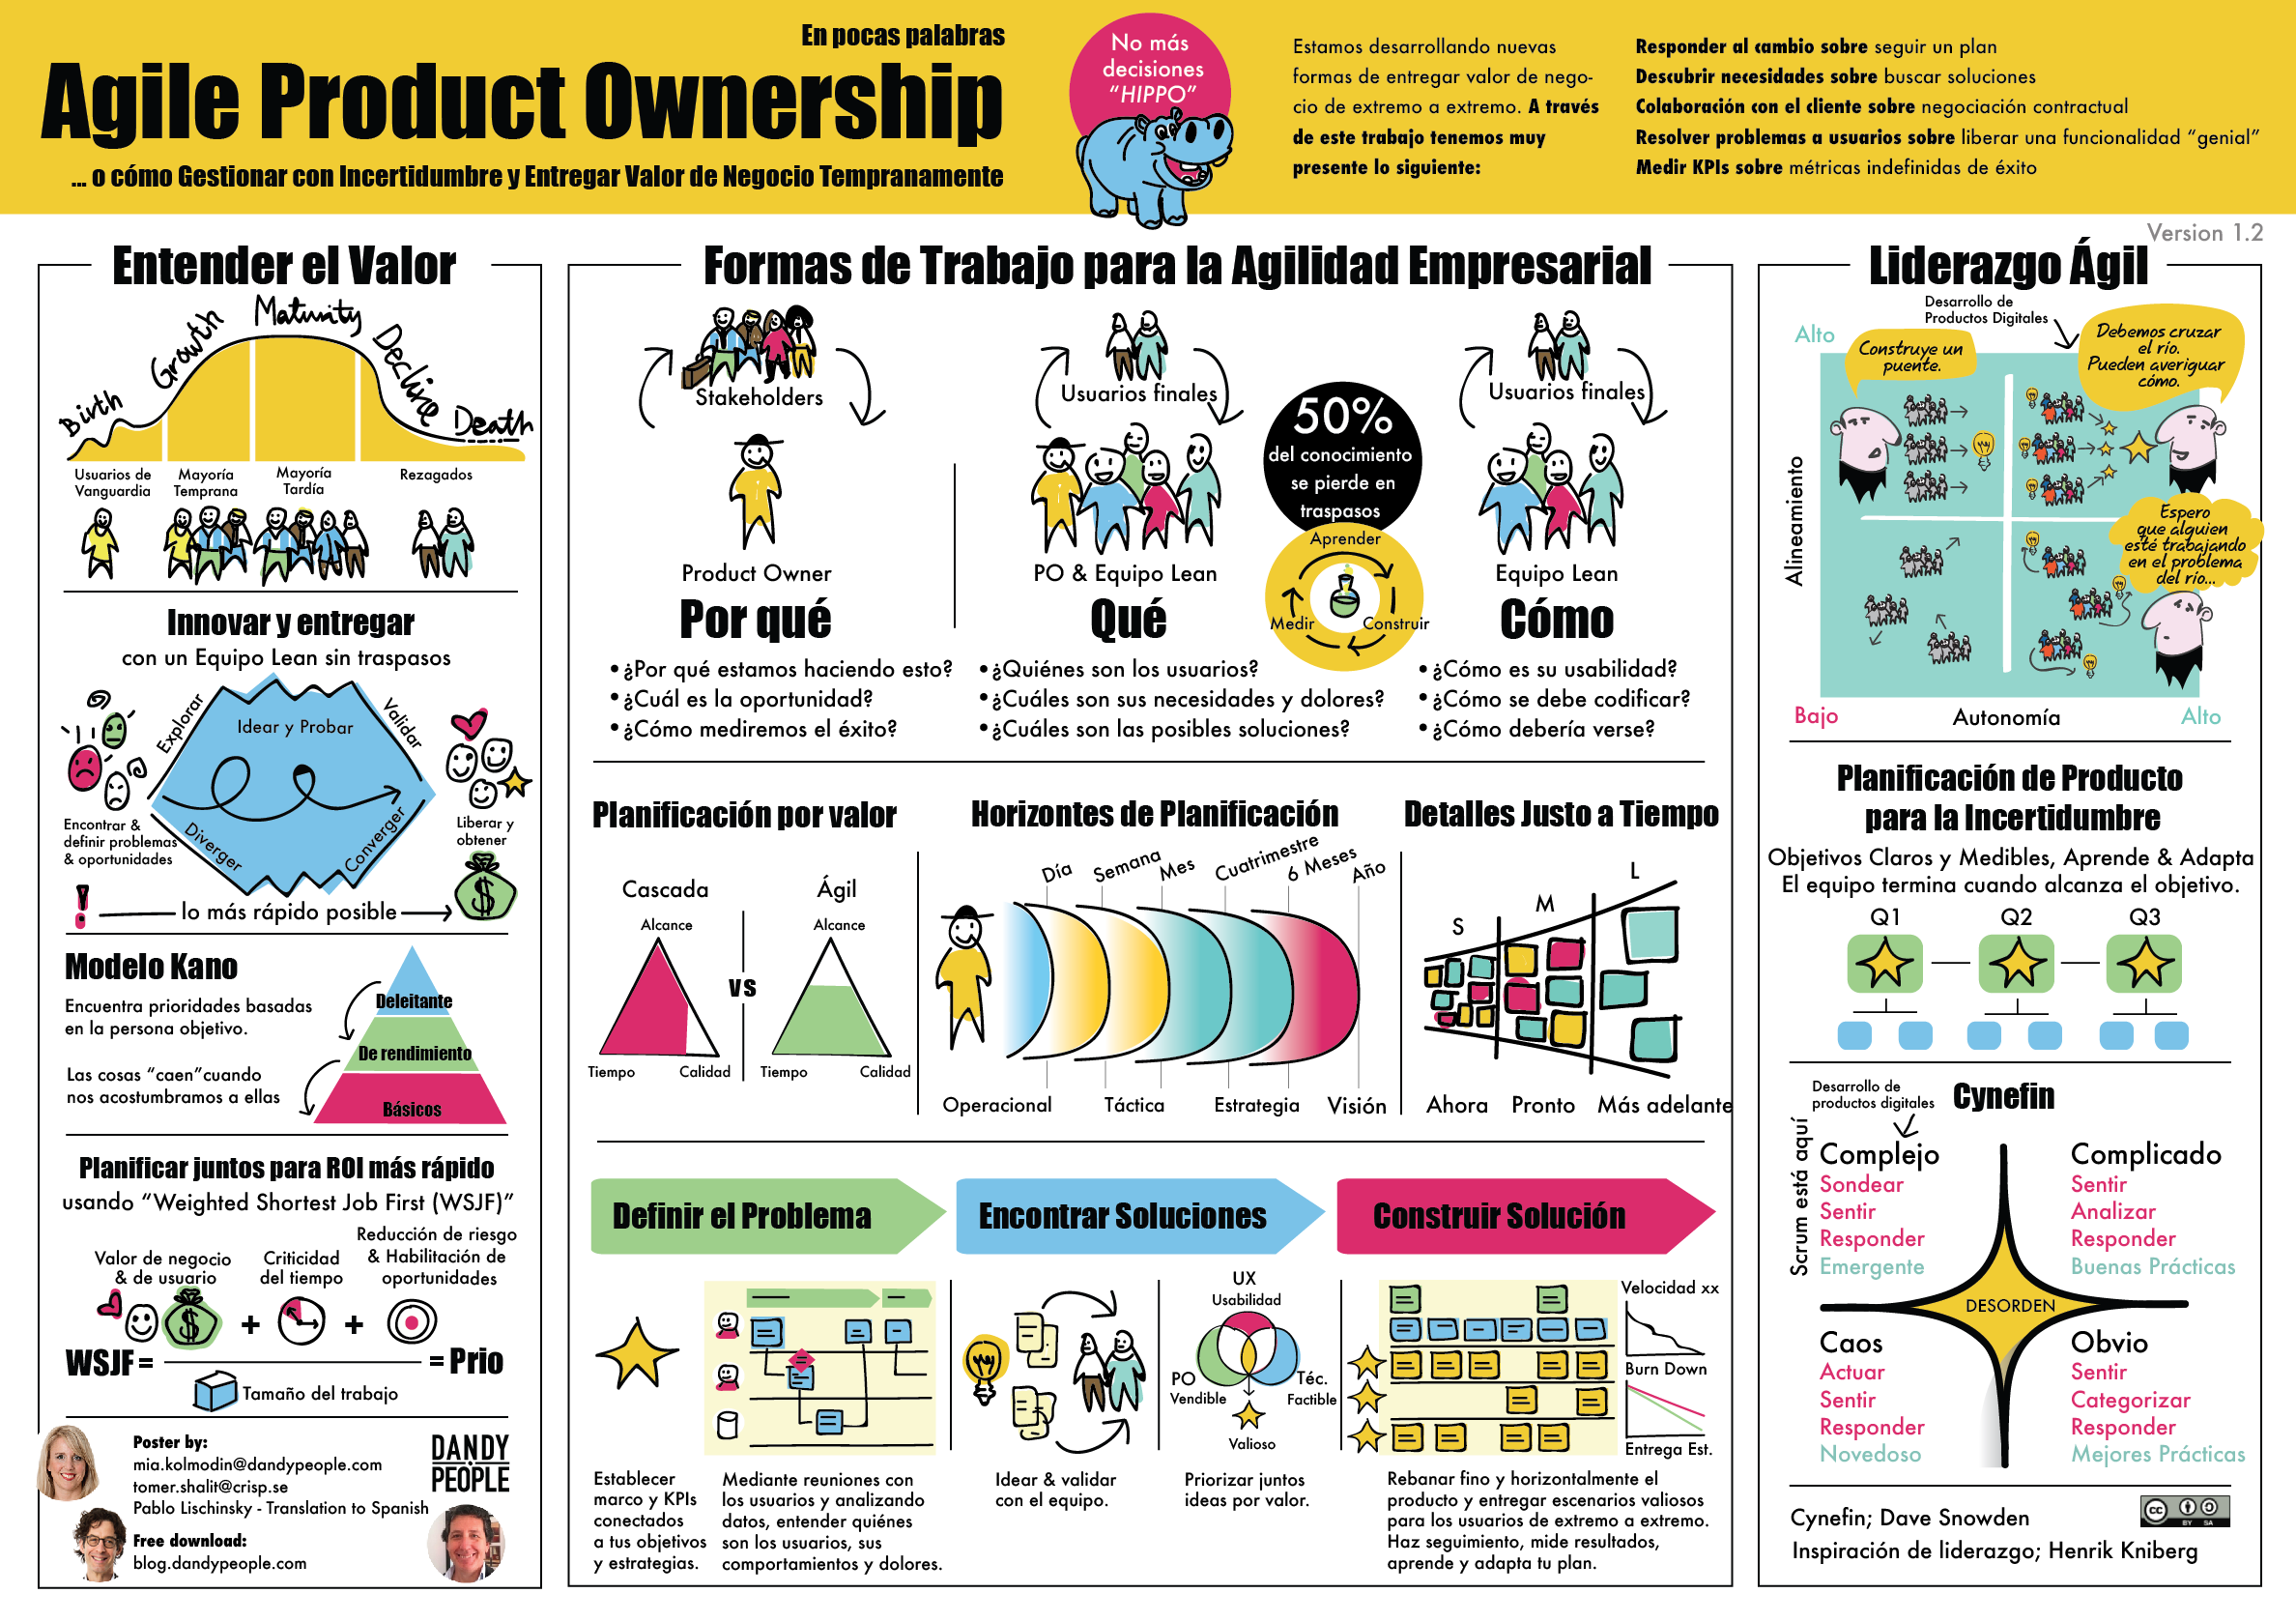 Agile Product Ownership Poster in a Nutshell in Spanish